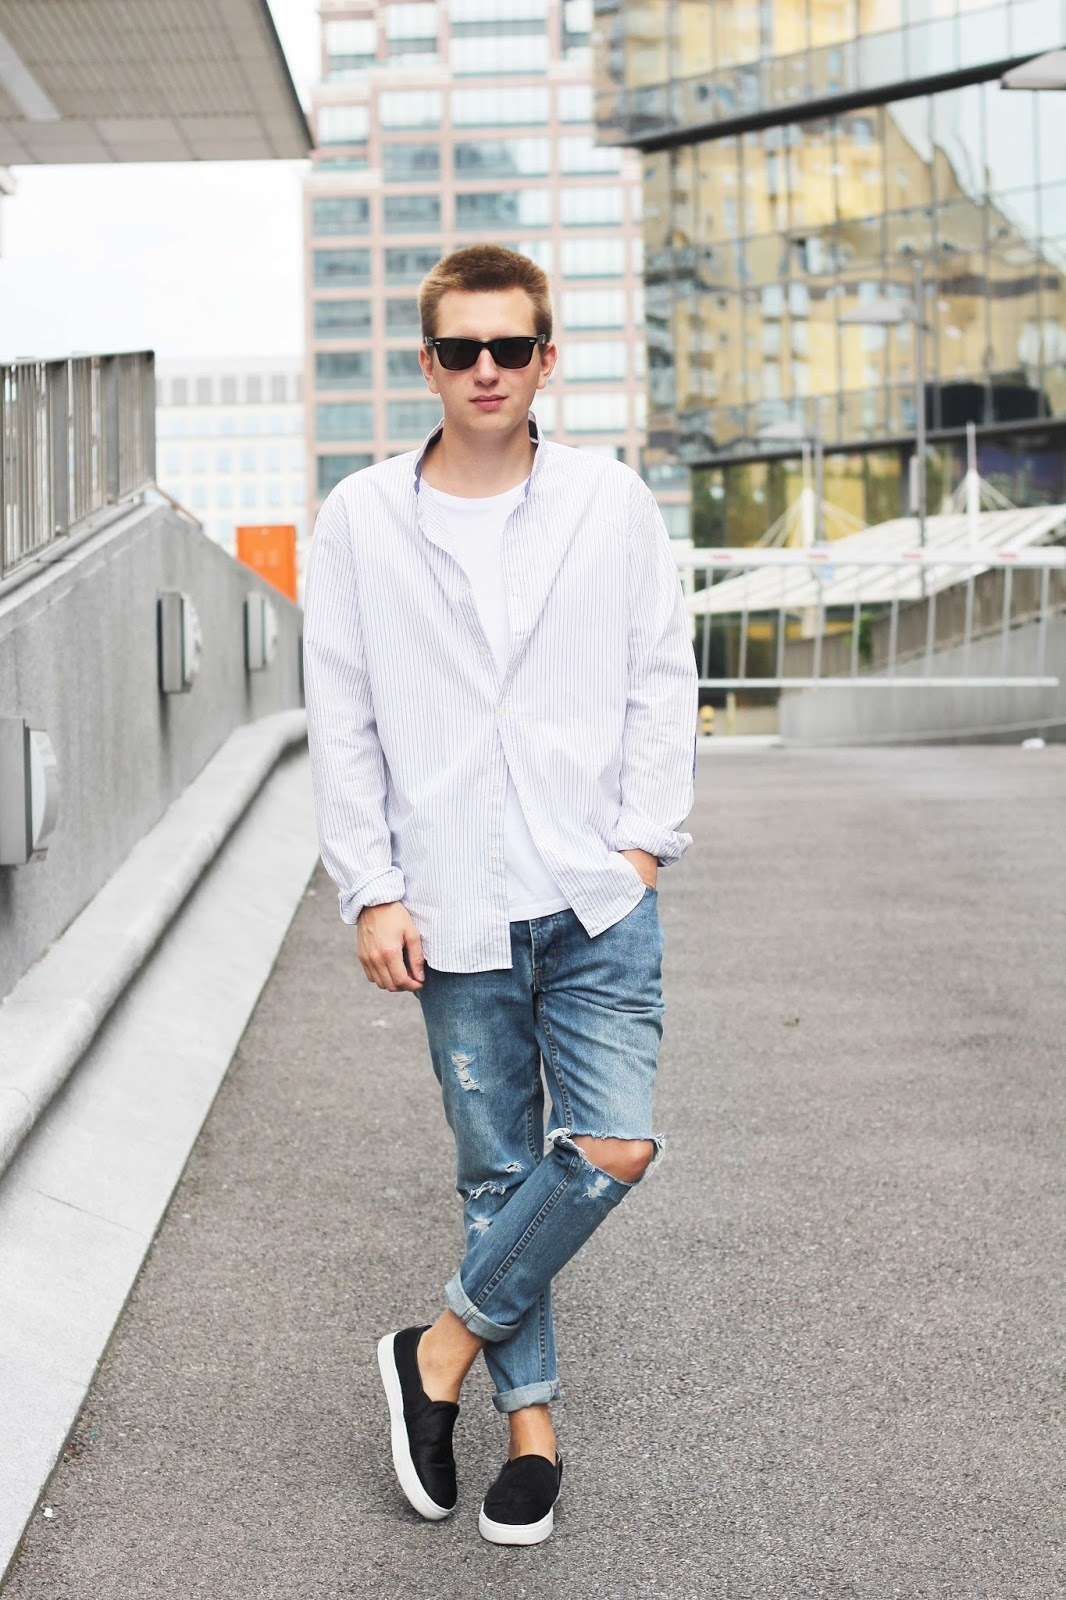 White t shirt and blue jeans - This Combination Of A White And Purple Crew Neck T Shirt And Blue Ripped